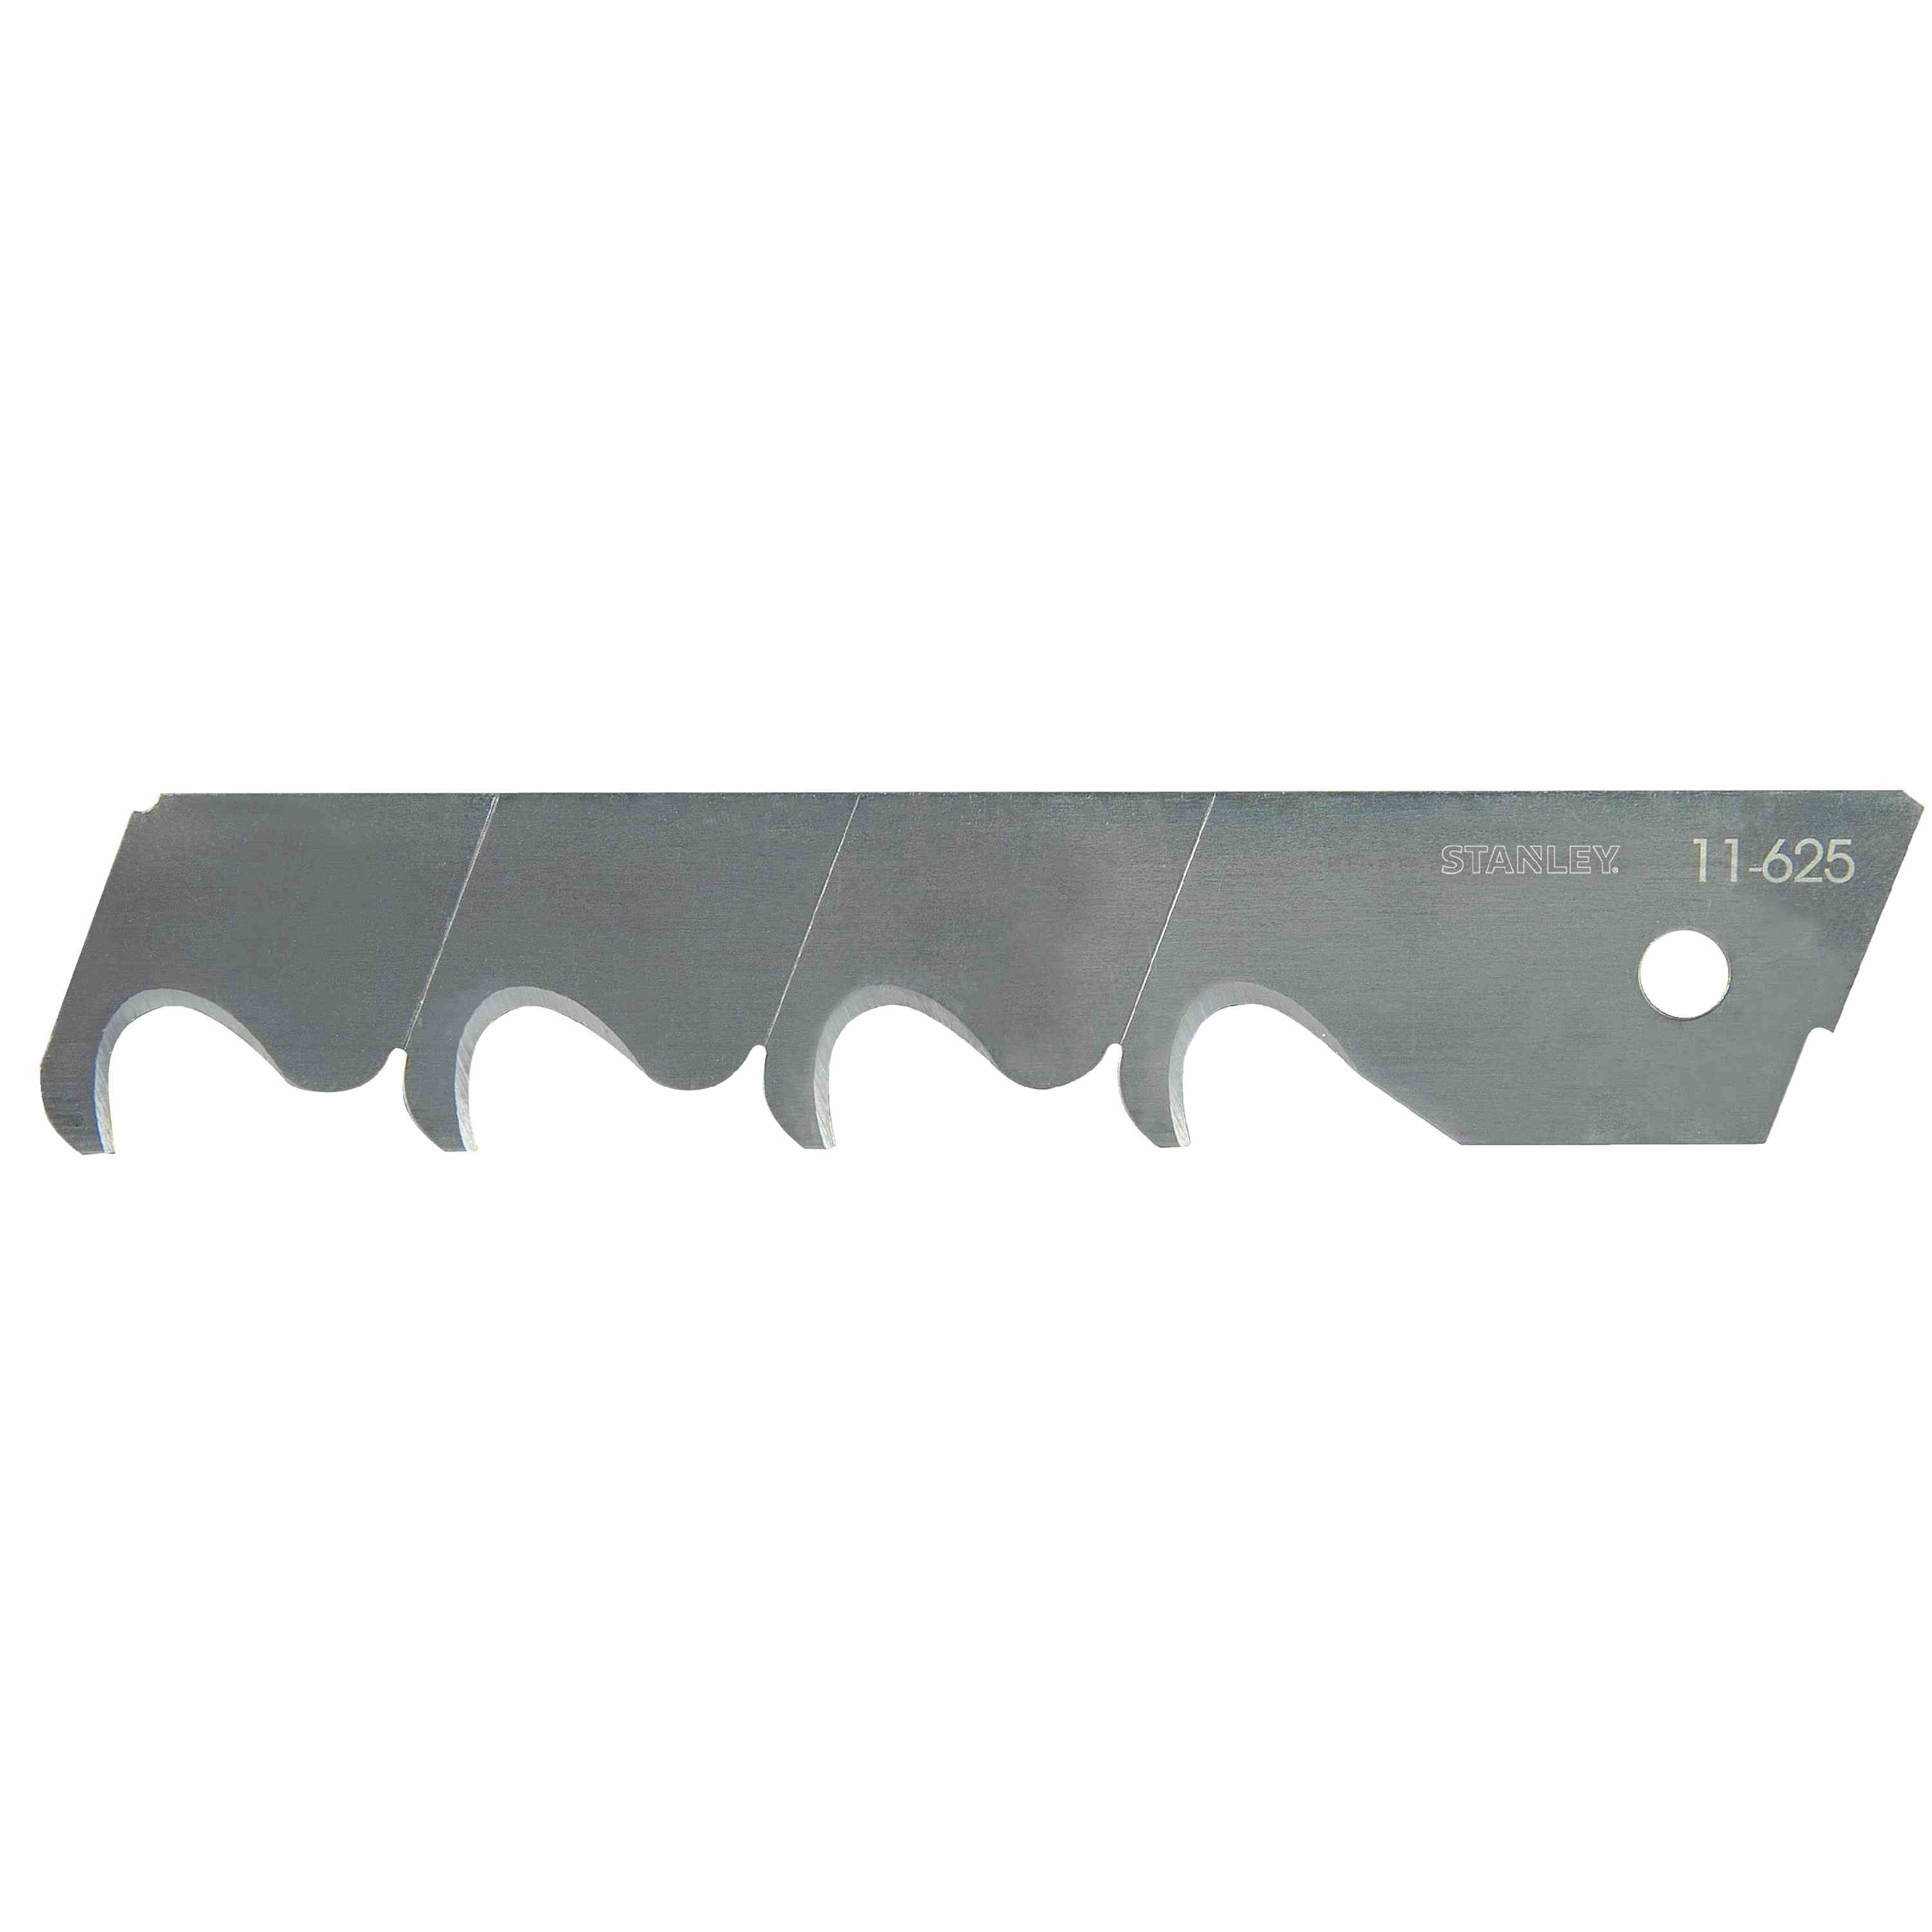 Stanley Tools - 5 pk 25mm SnapOff Hook Blades - 11-625